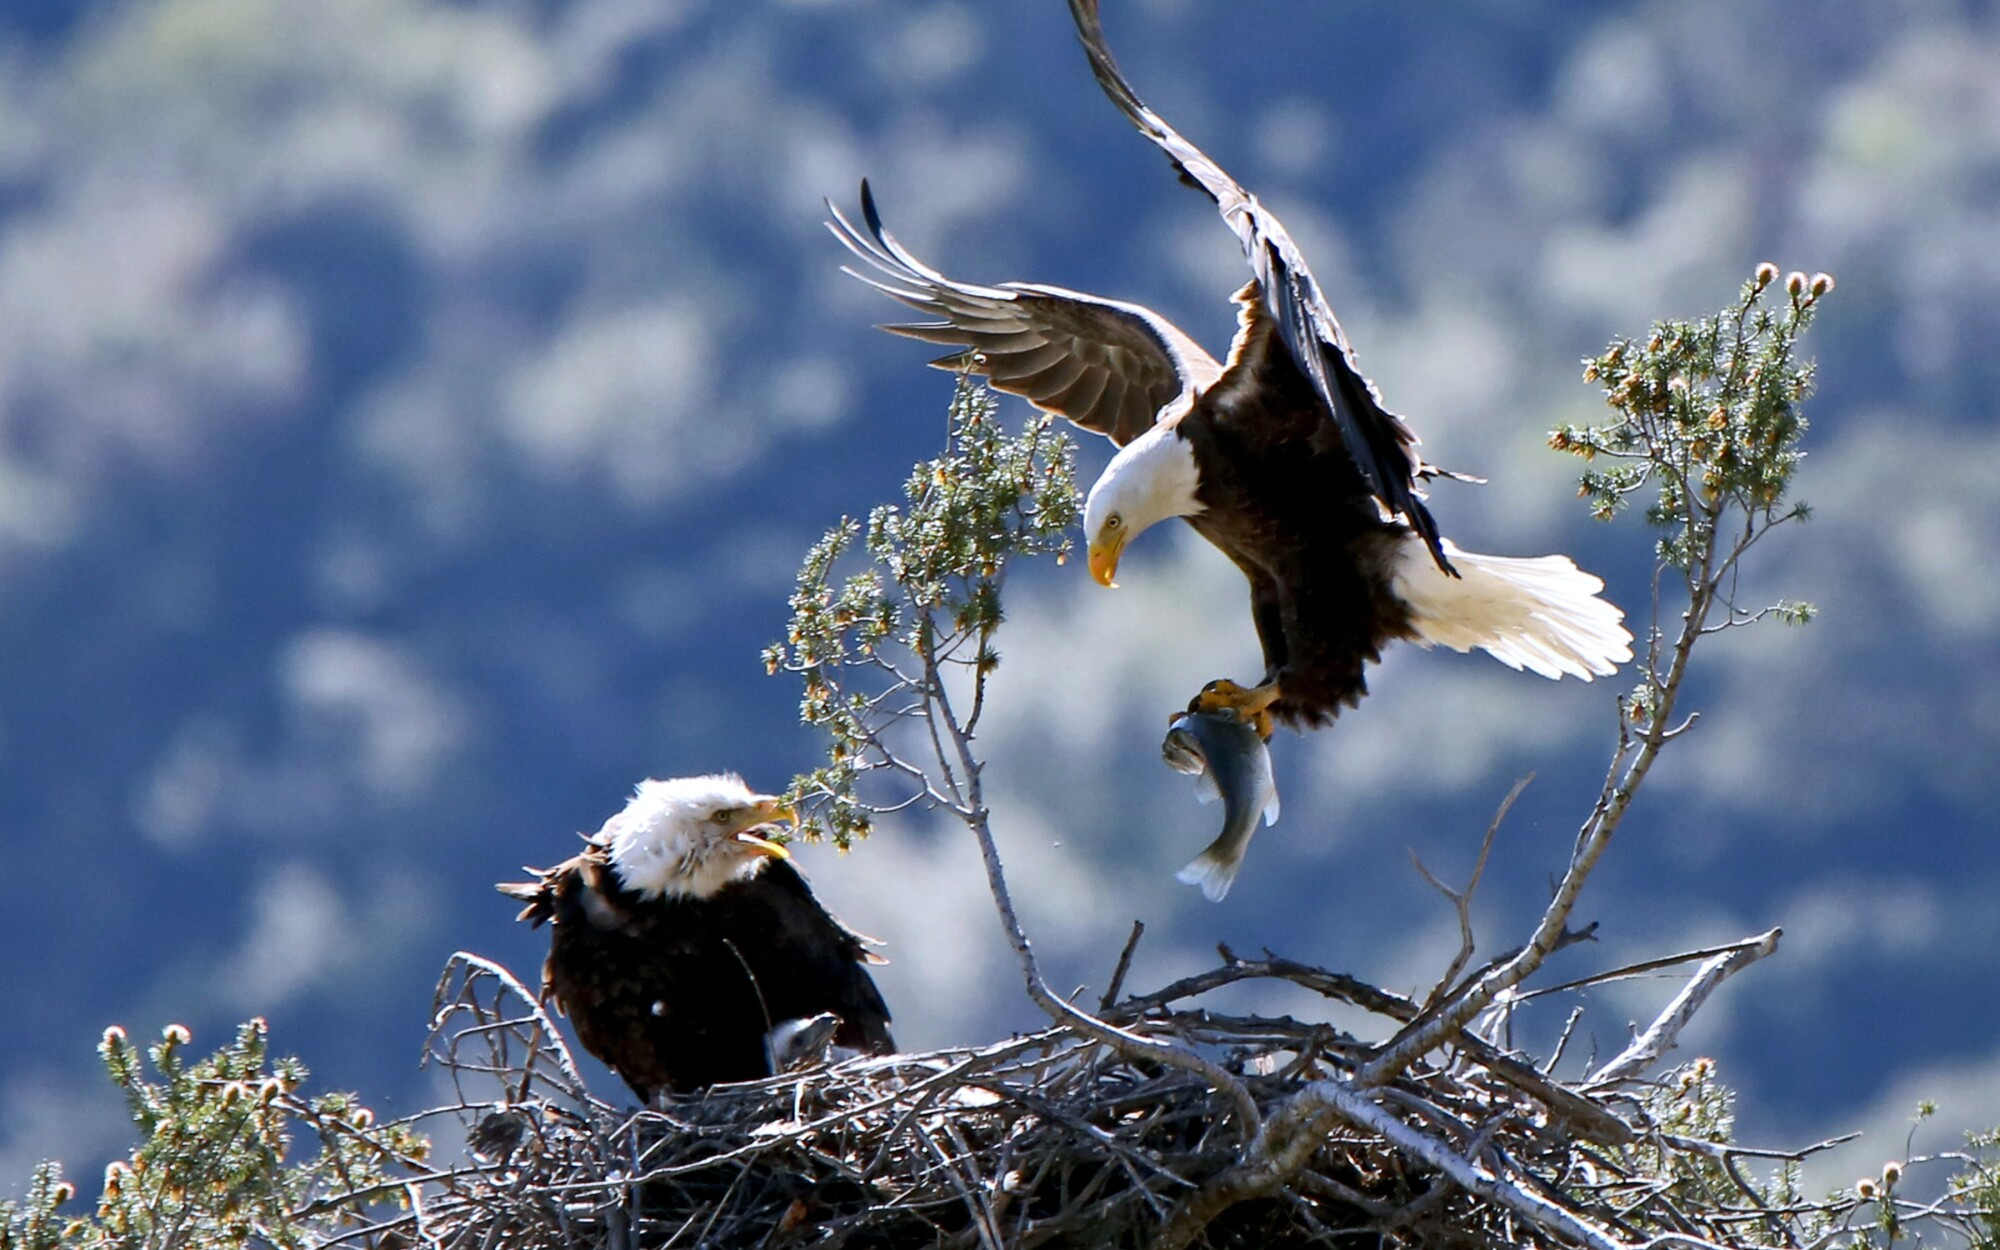 Bald eagles have found themselves a new home: Suburbia - Los Angeles Times